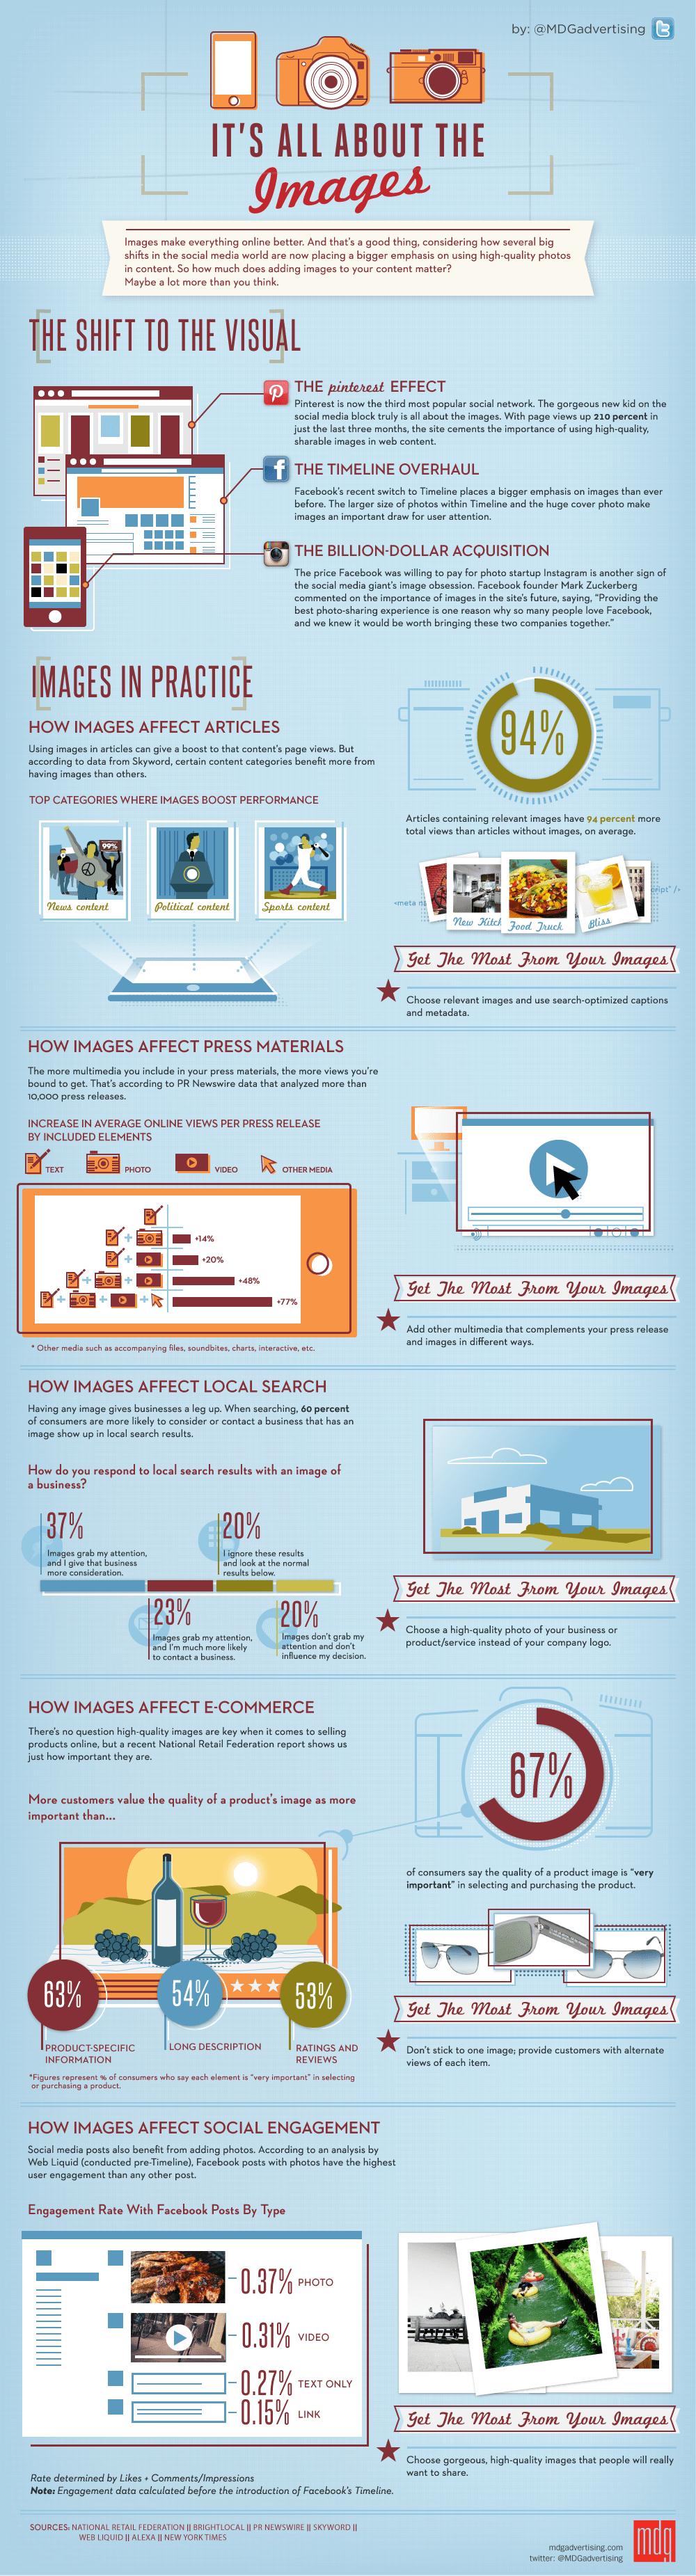 It's All About the Images [infographic by MDG Advertising]